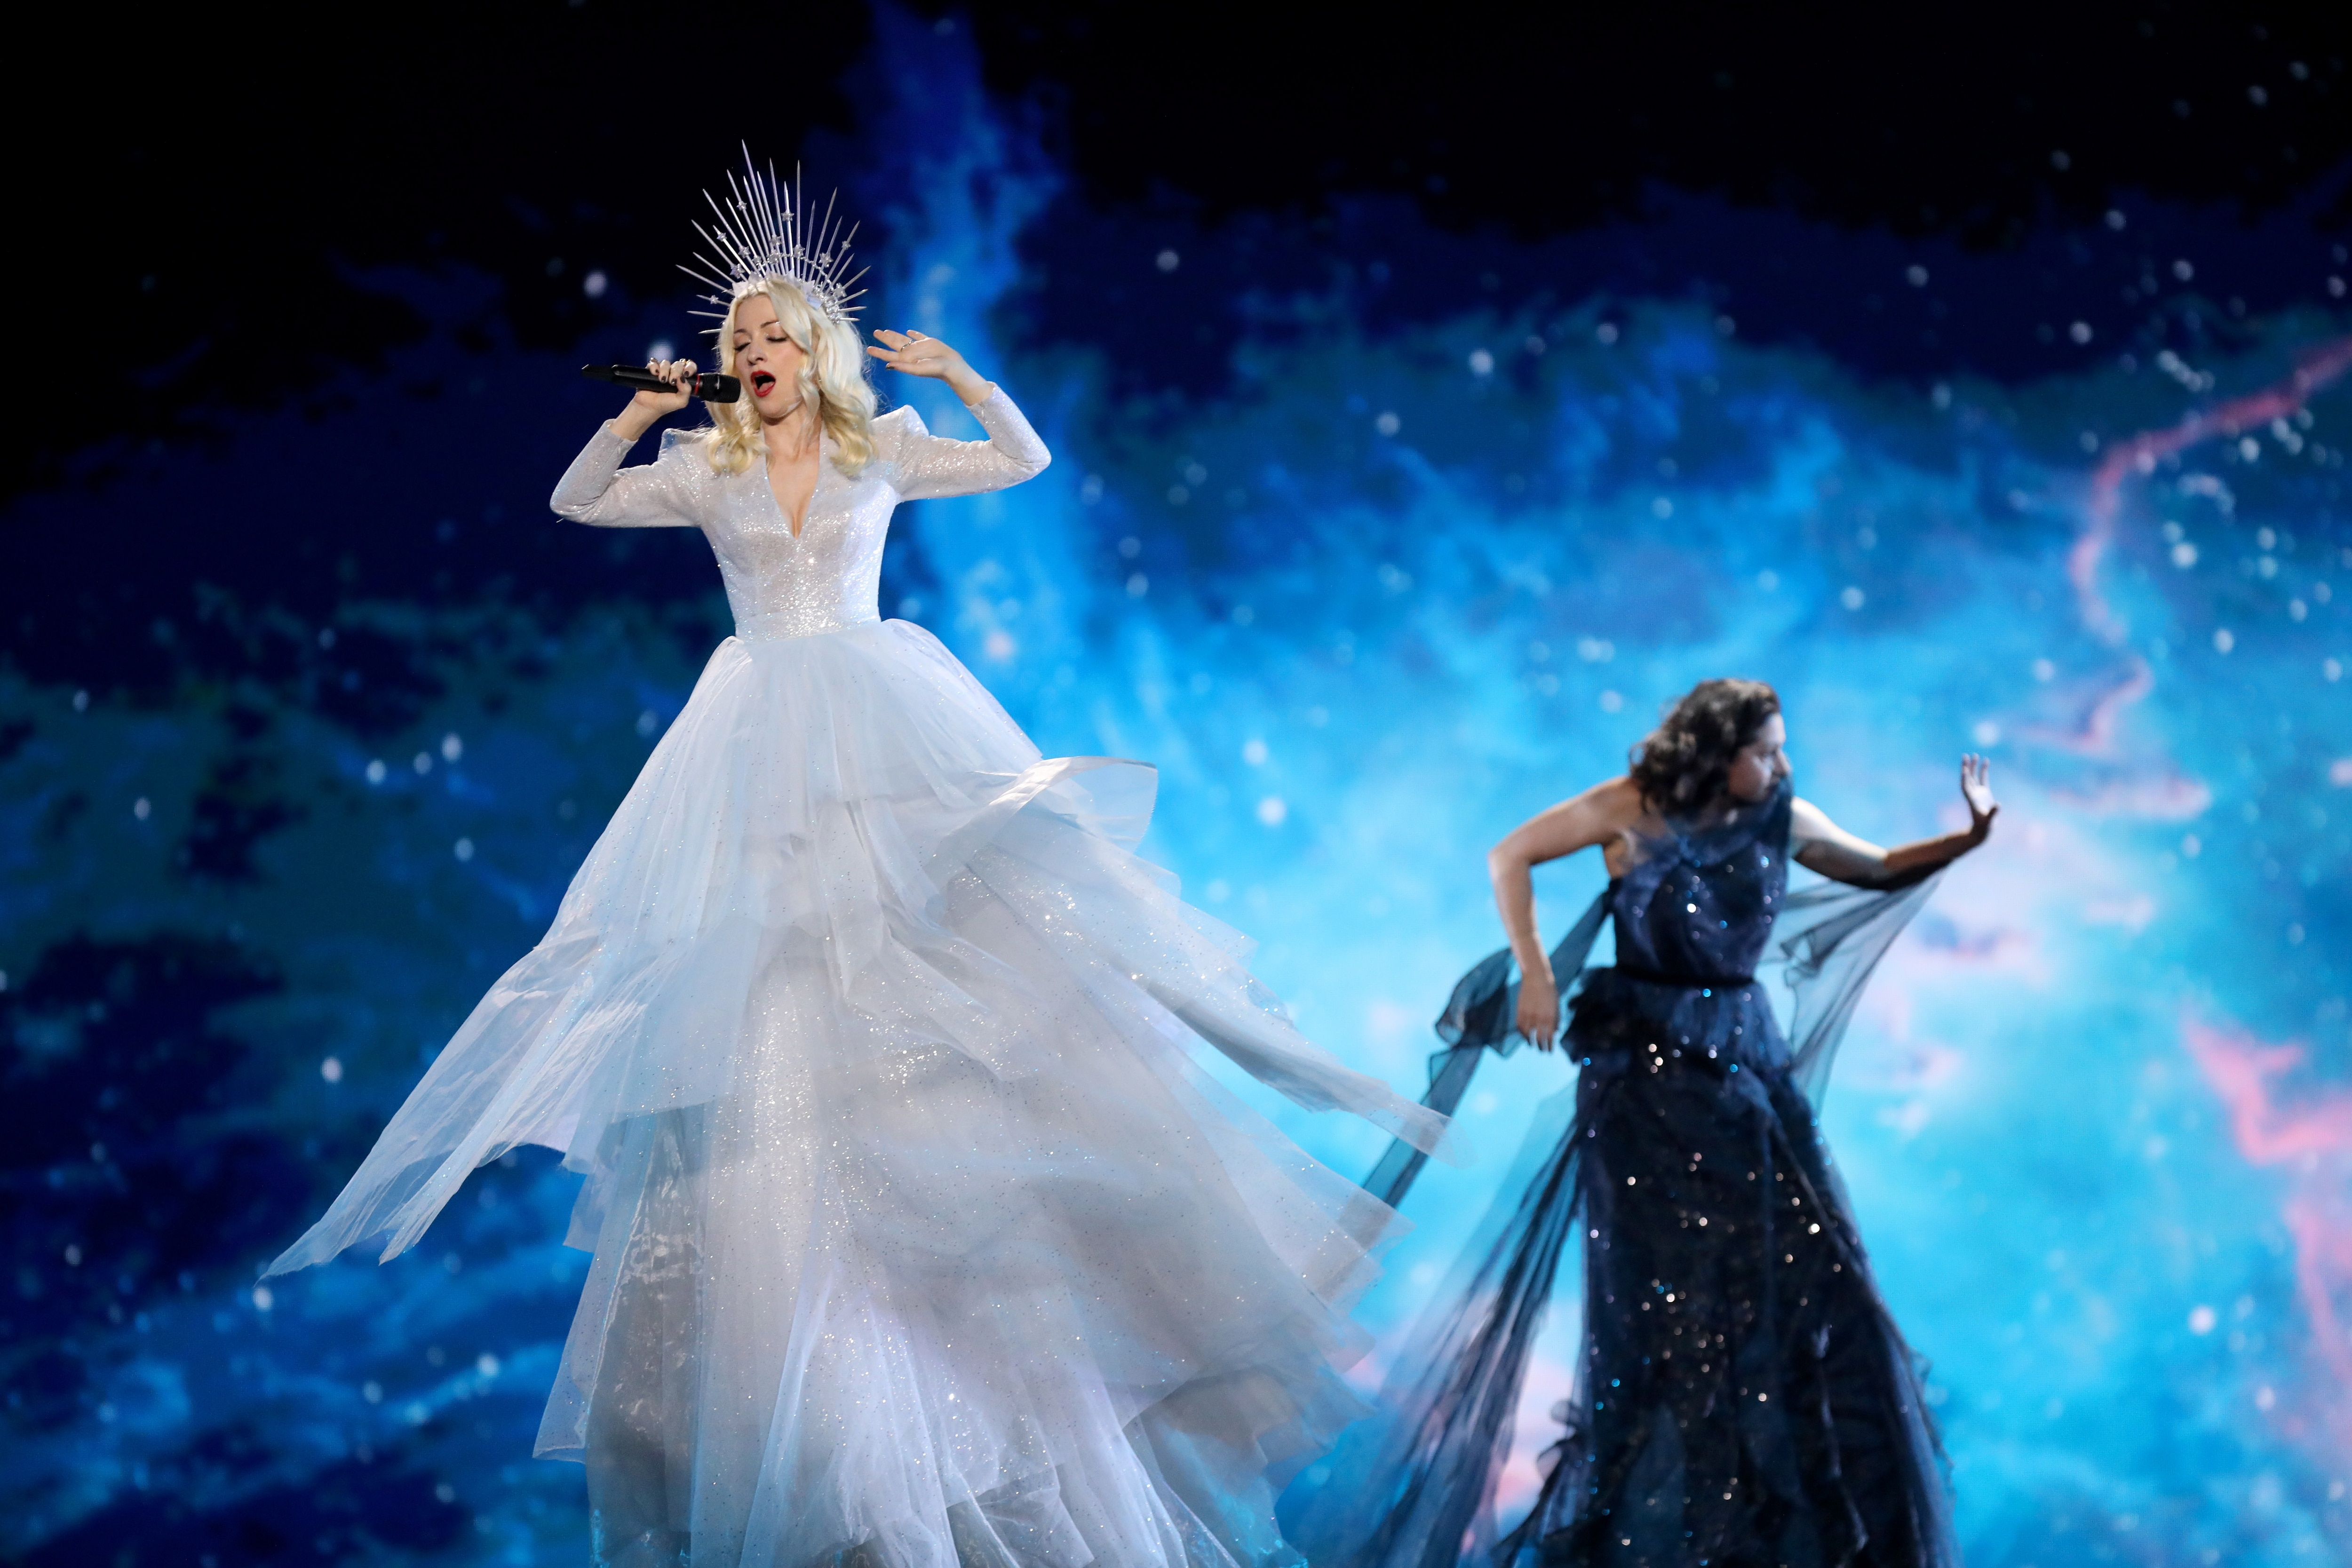 Australian singer Kate Miller-Heidke at the Eurovision semi finals.